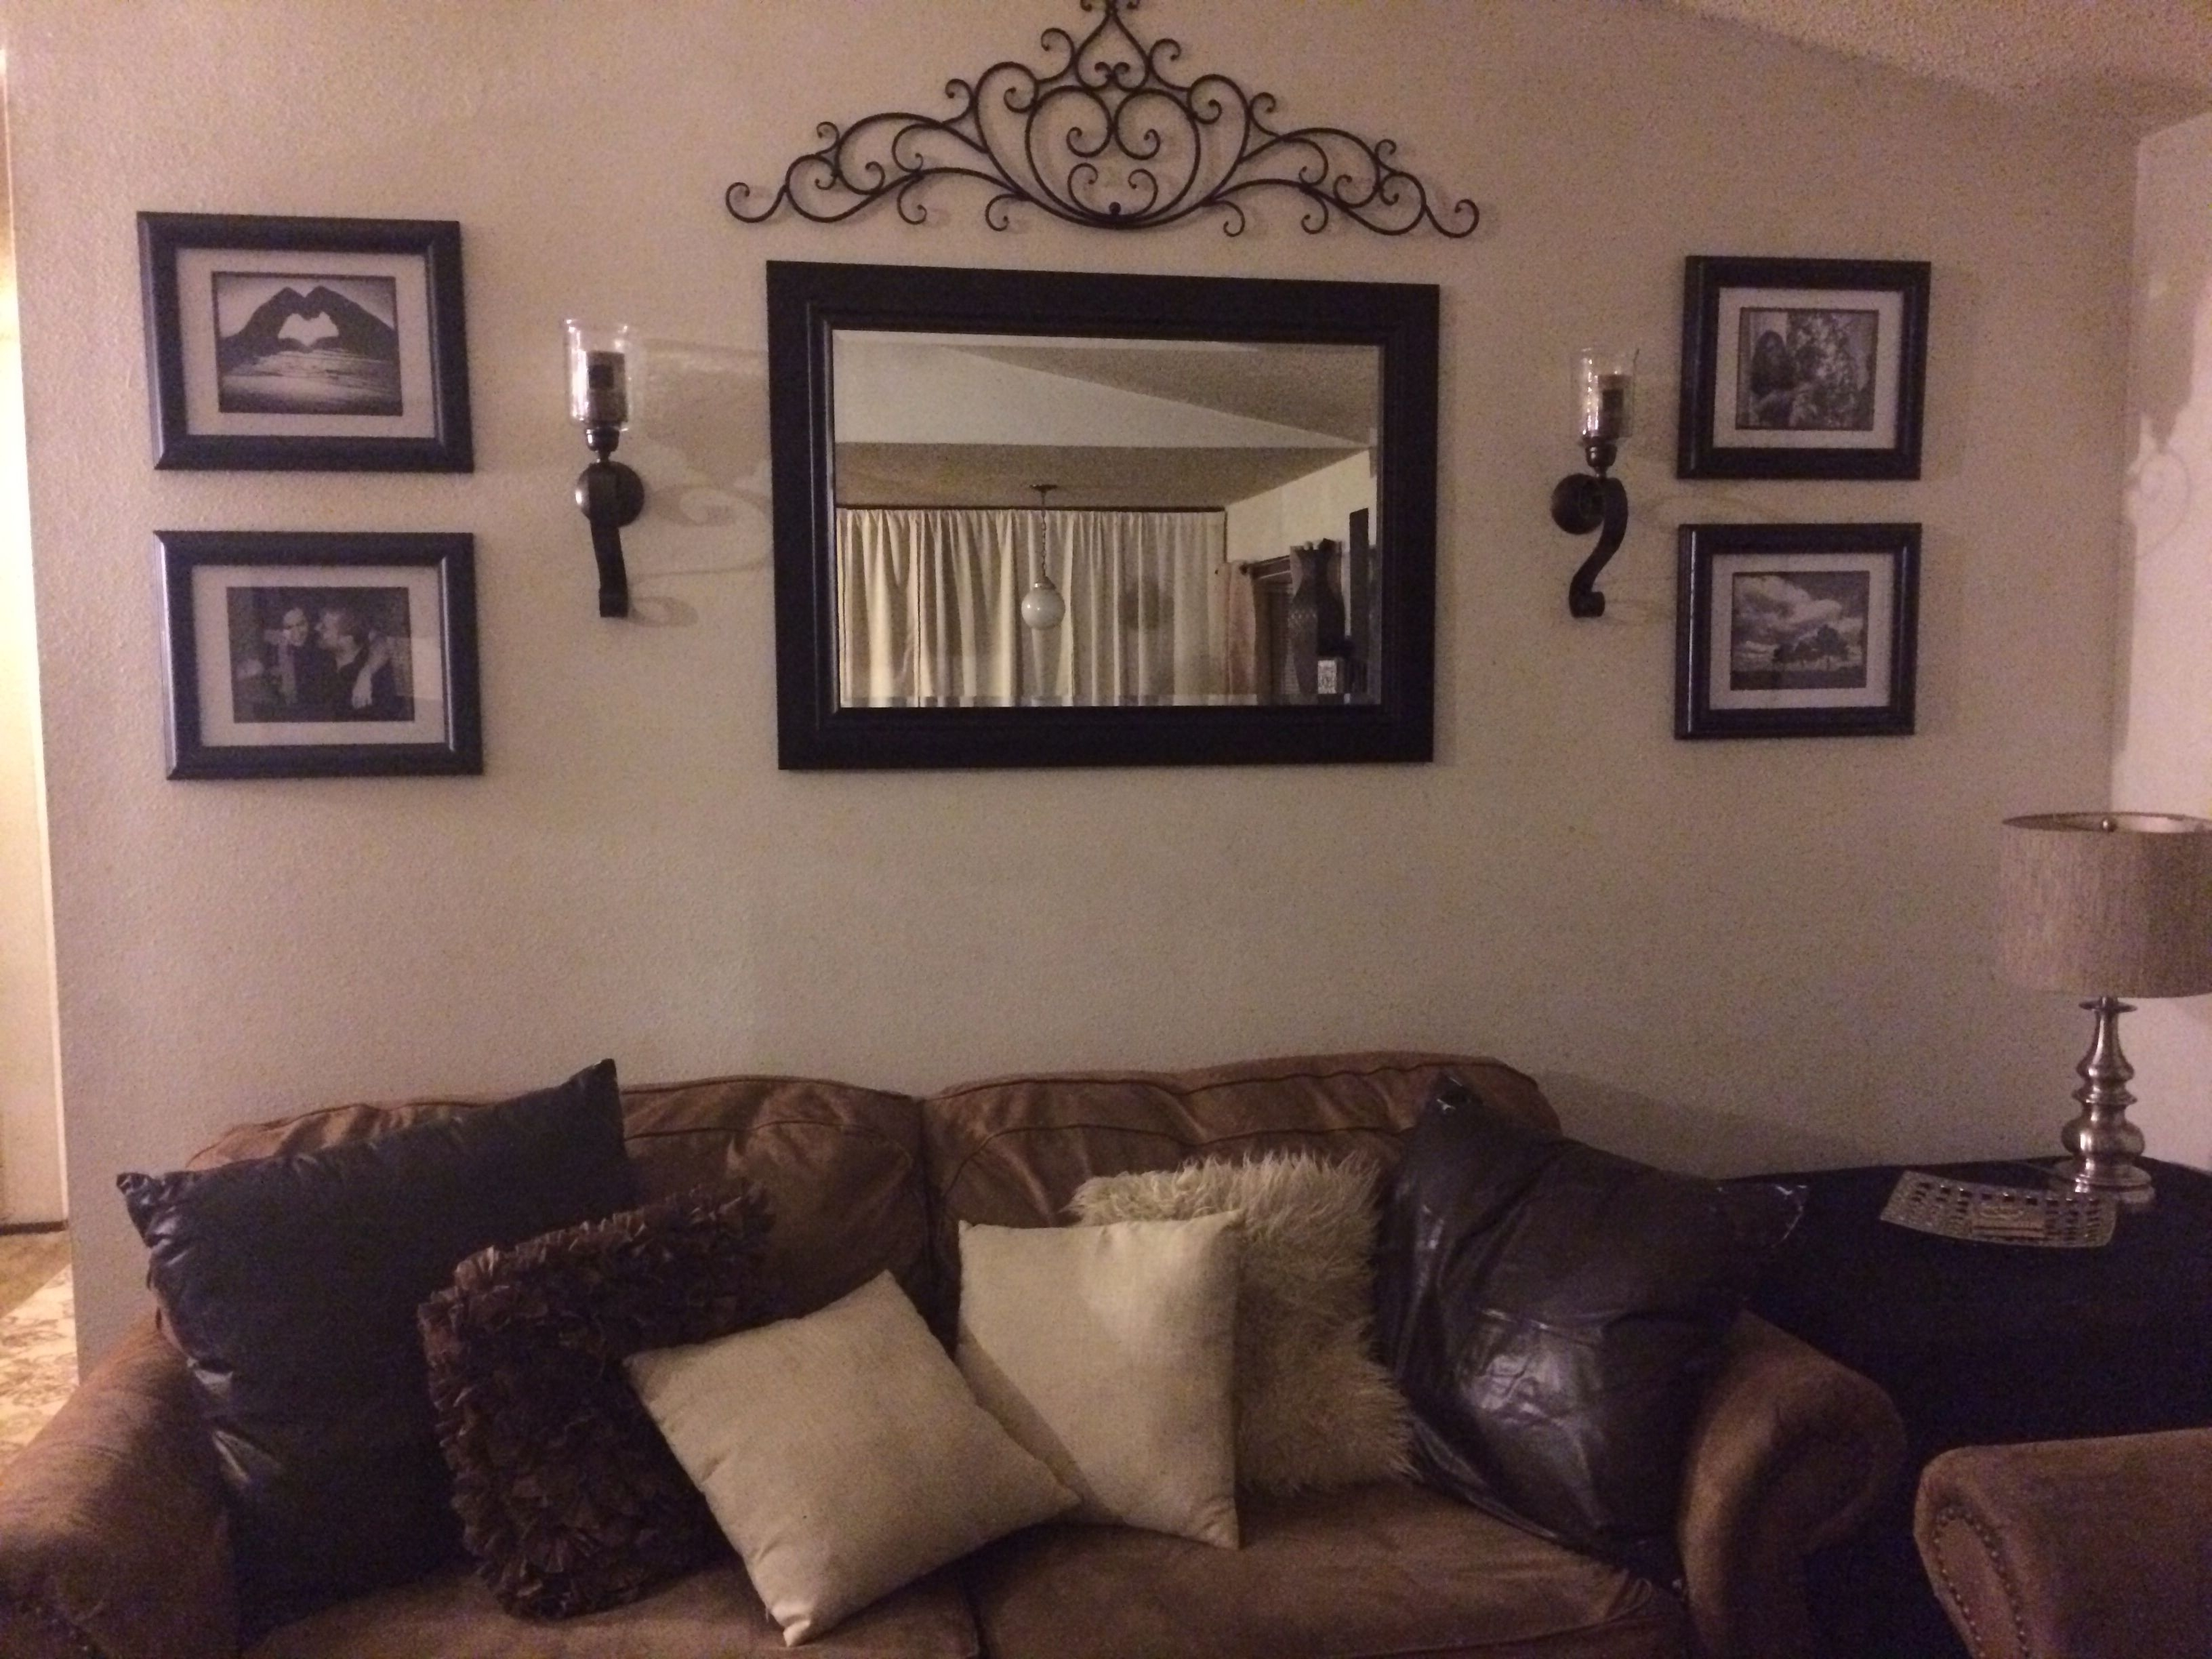 Trendy Wall Accents Behind Tv Intended For Behind Couch Wall In Living Room Mirror, Frame, Sconces, And Metal (Gallery 12 of 15)